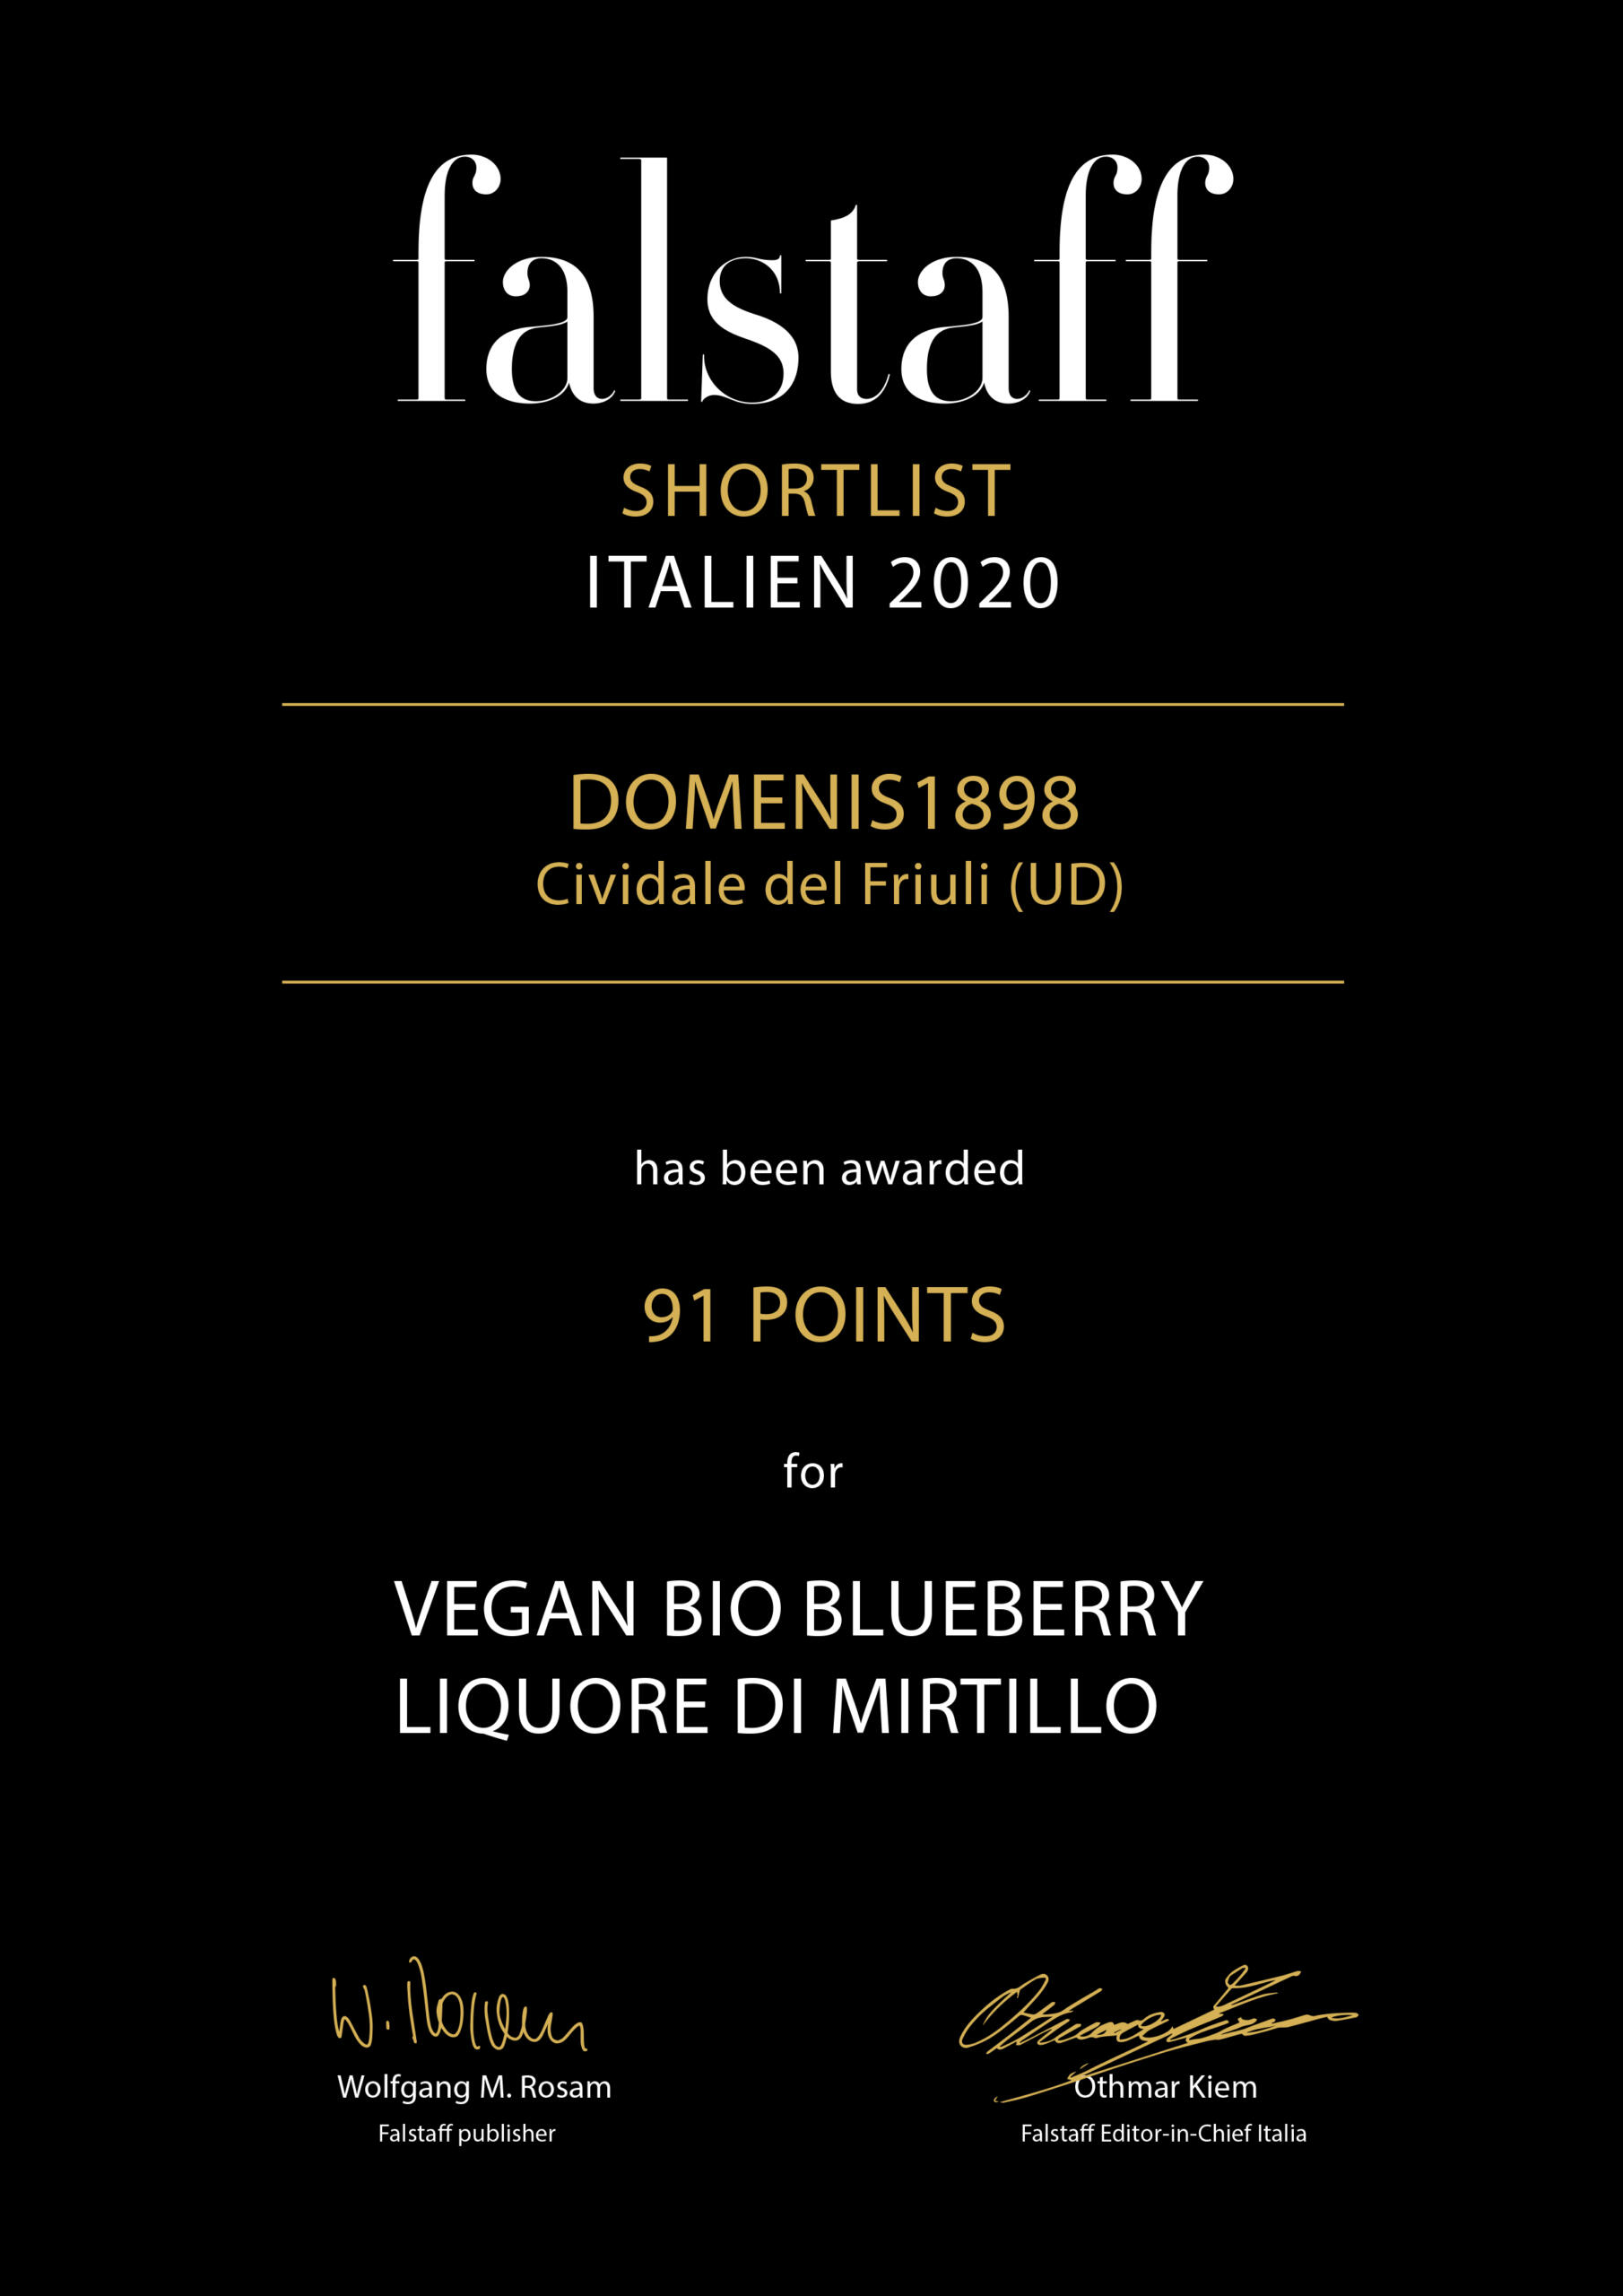 Falstaff Shortlist Italien 2020 – Vegan Blueberry